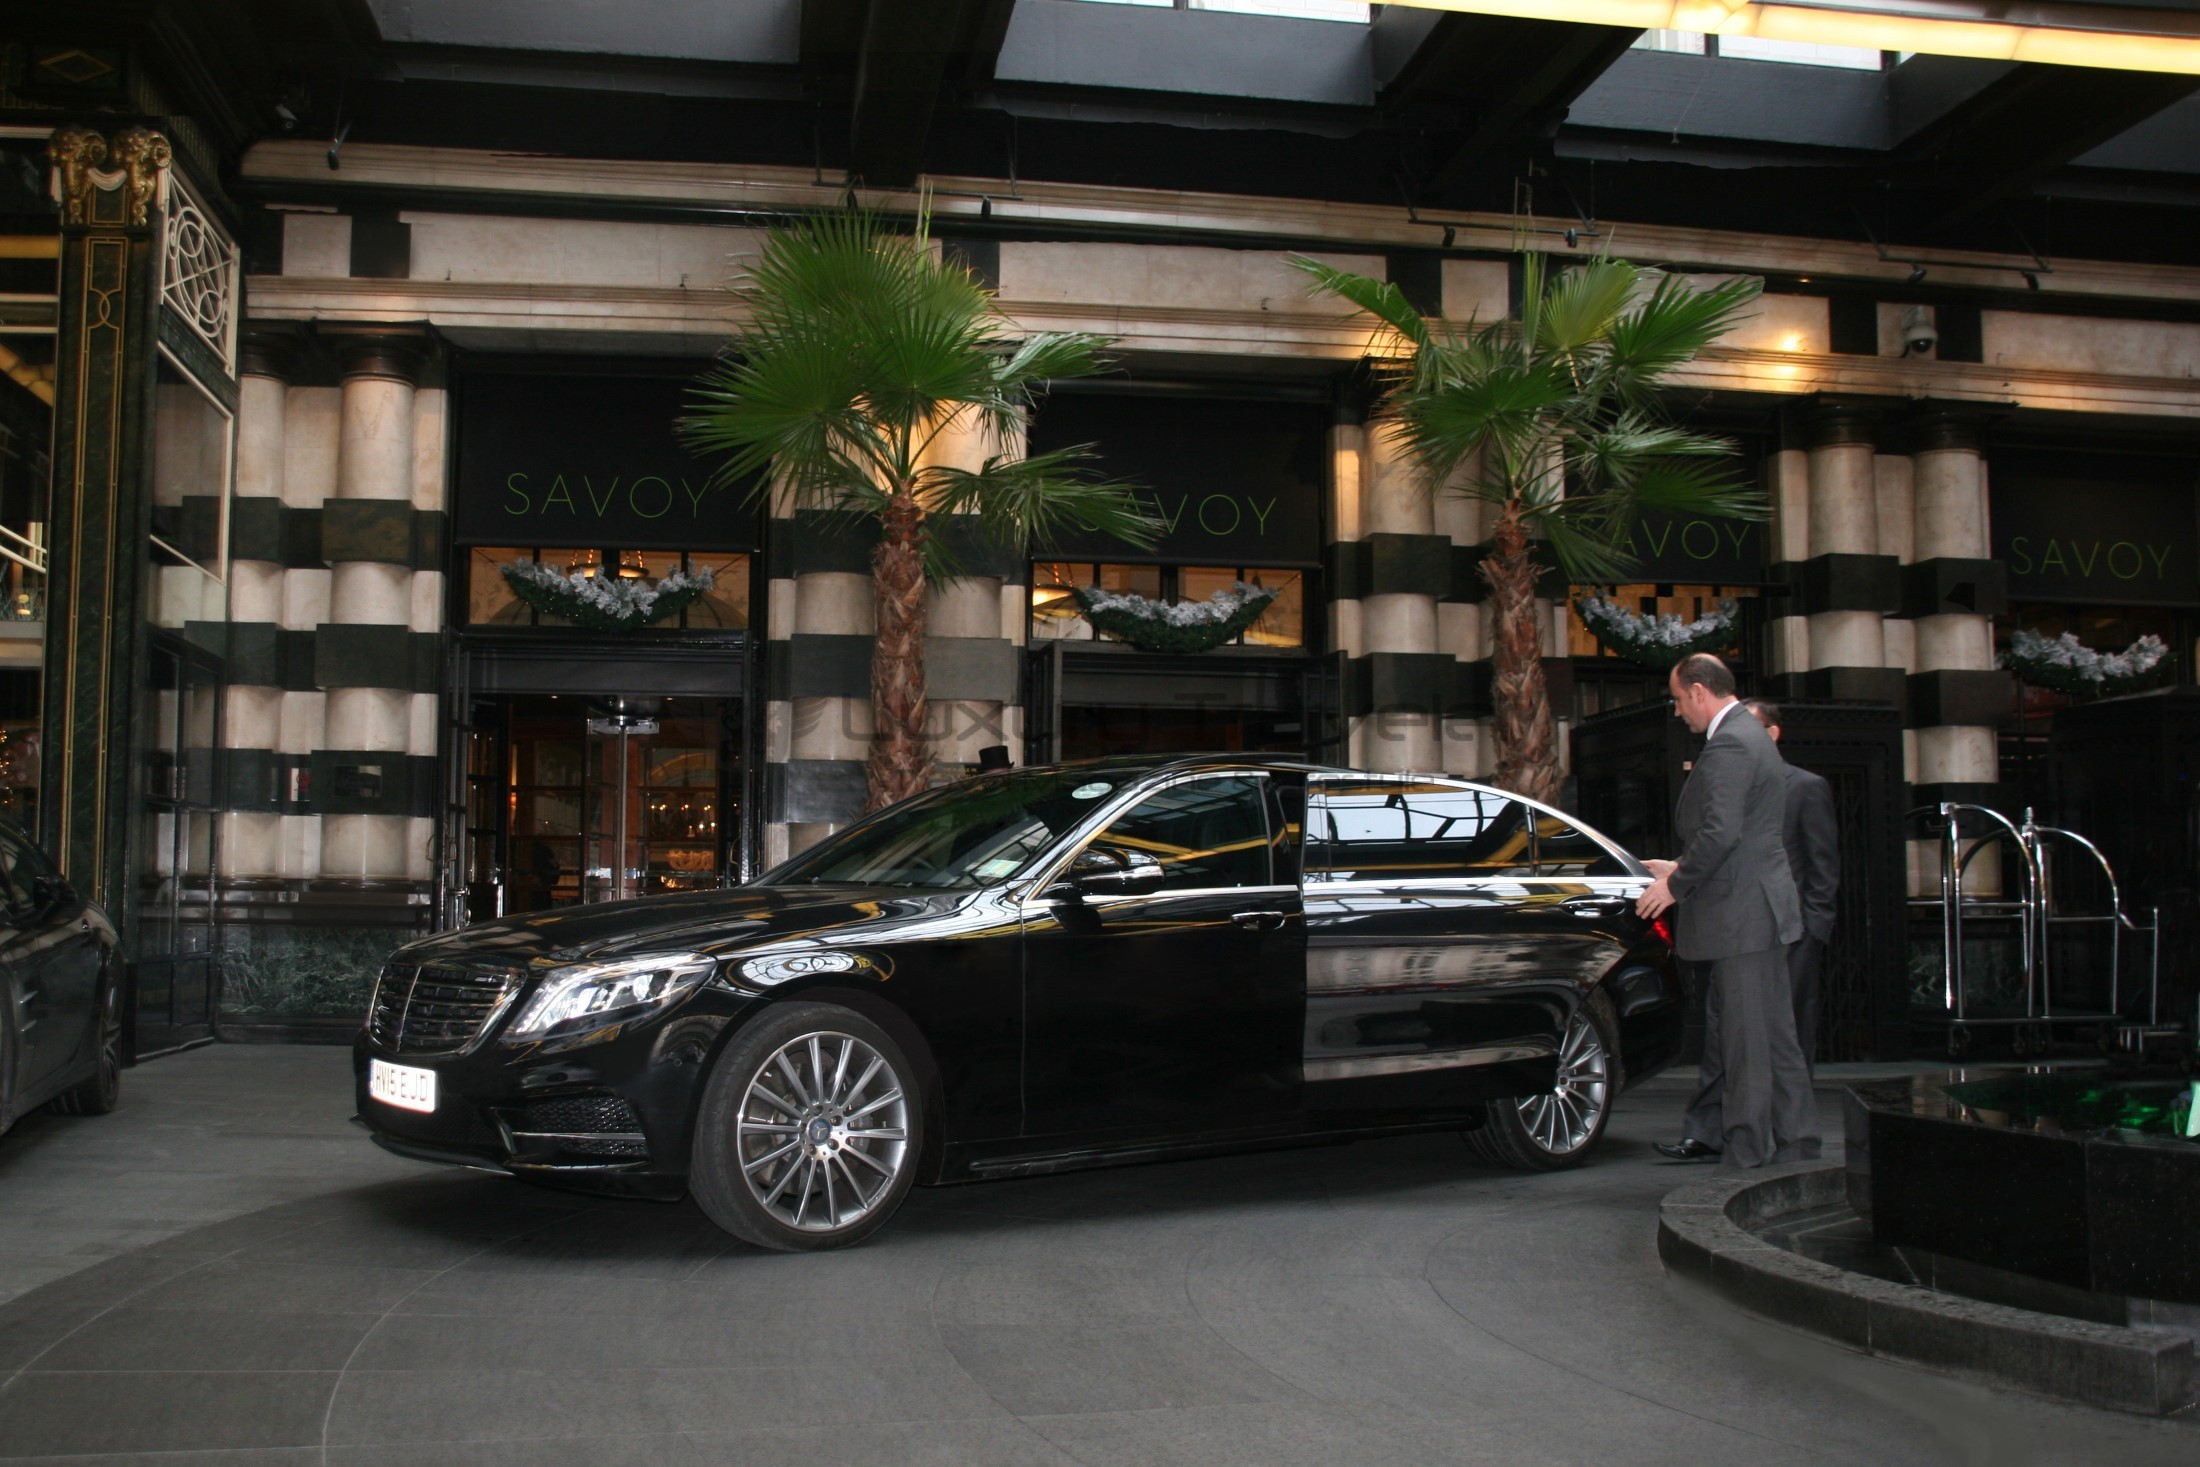 eg_chauffers_luxury_london_uk_mercedes_s_class